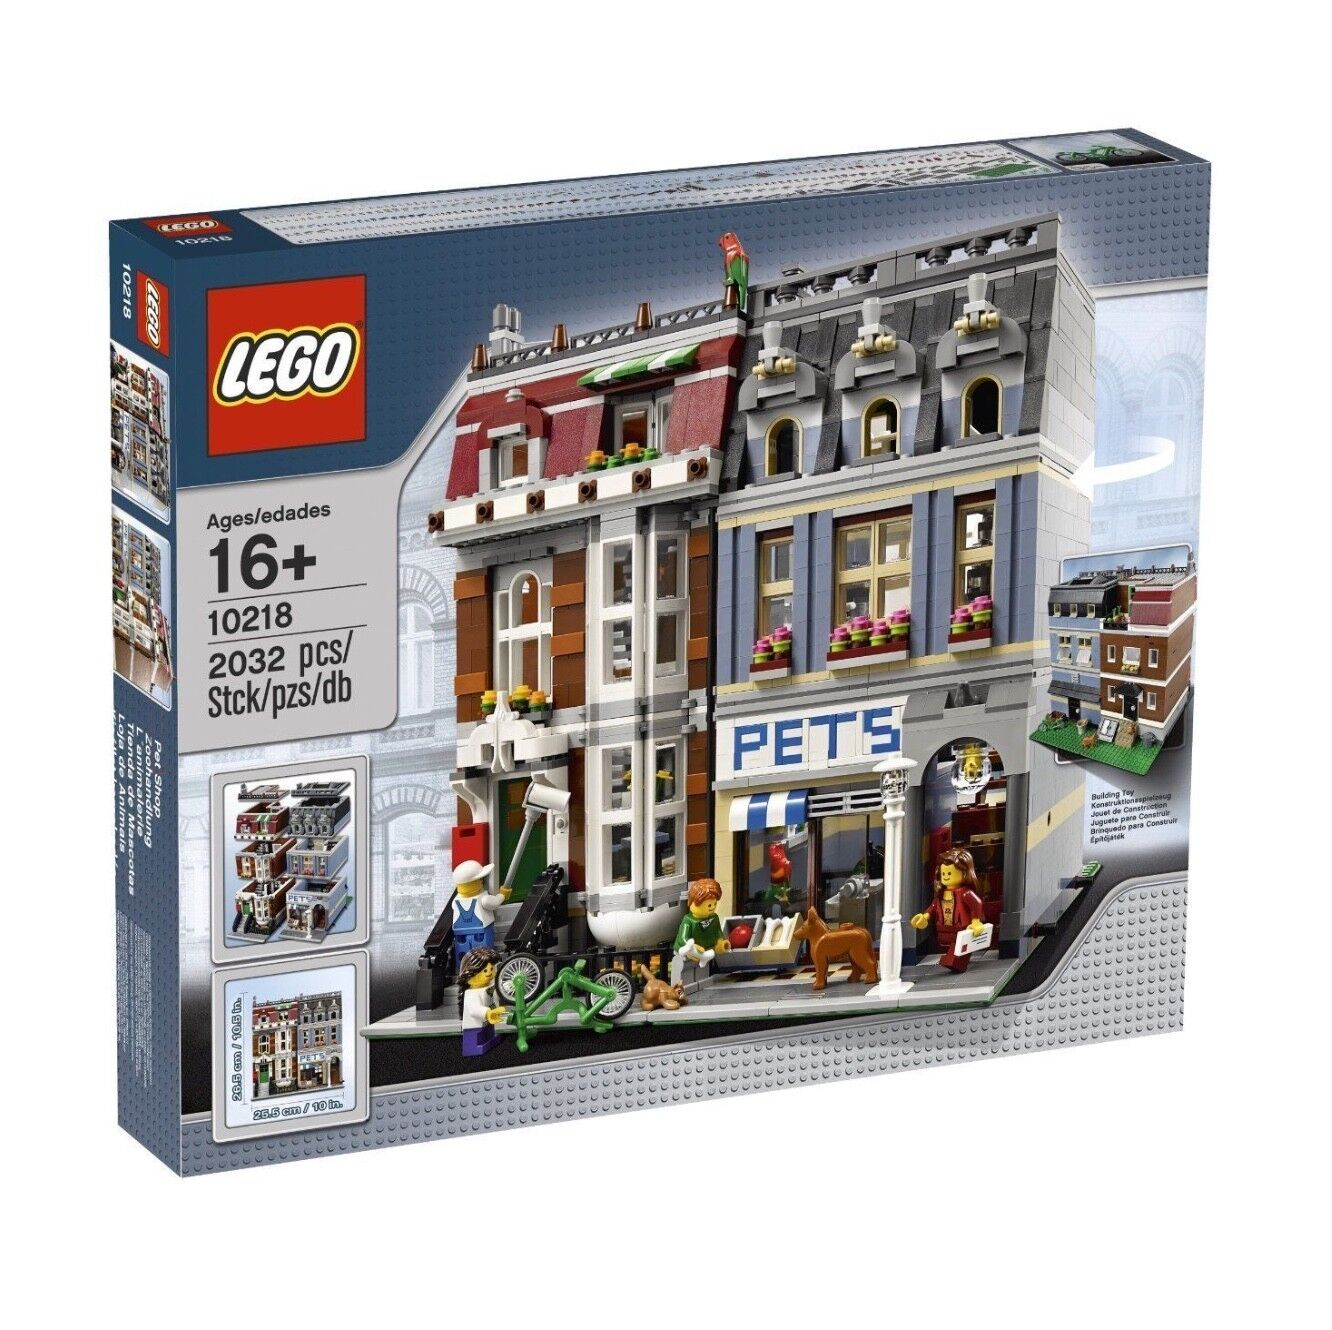 LEGO 10218 Pet Shop, Modular Building, CREATOR EXPERT, New